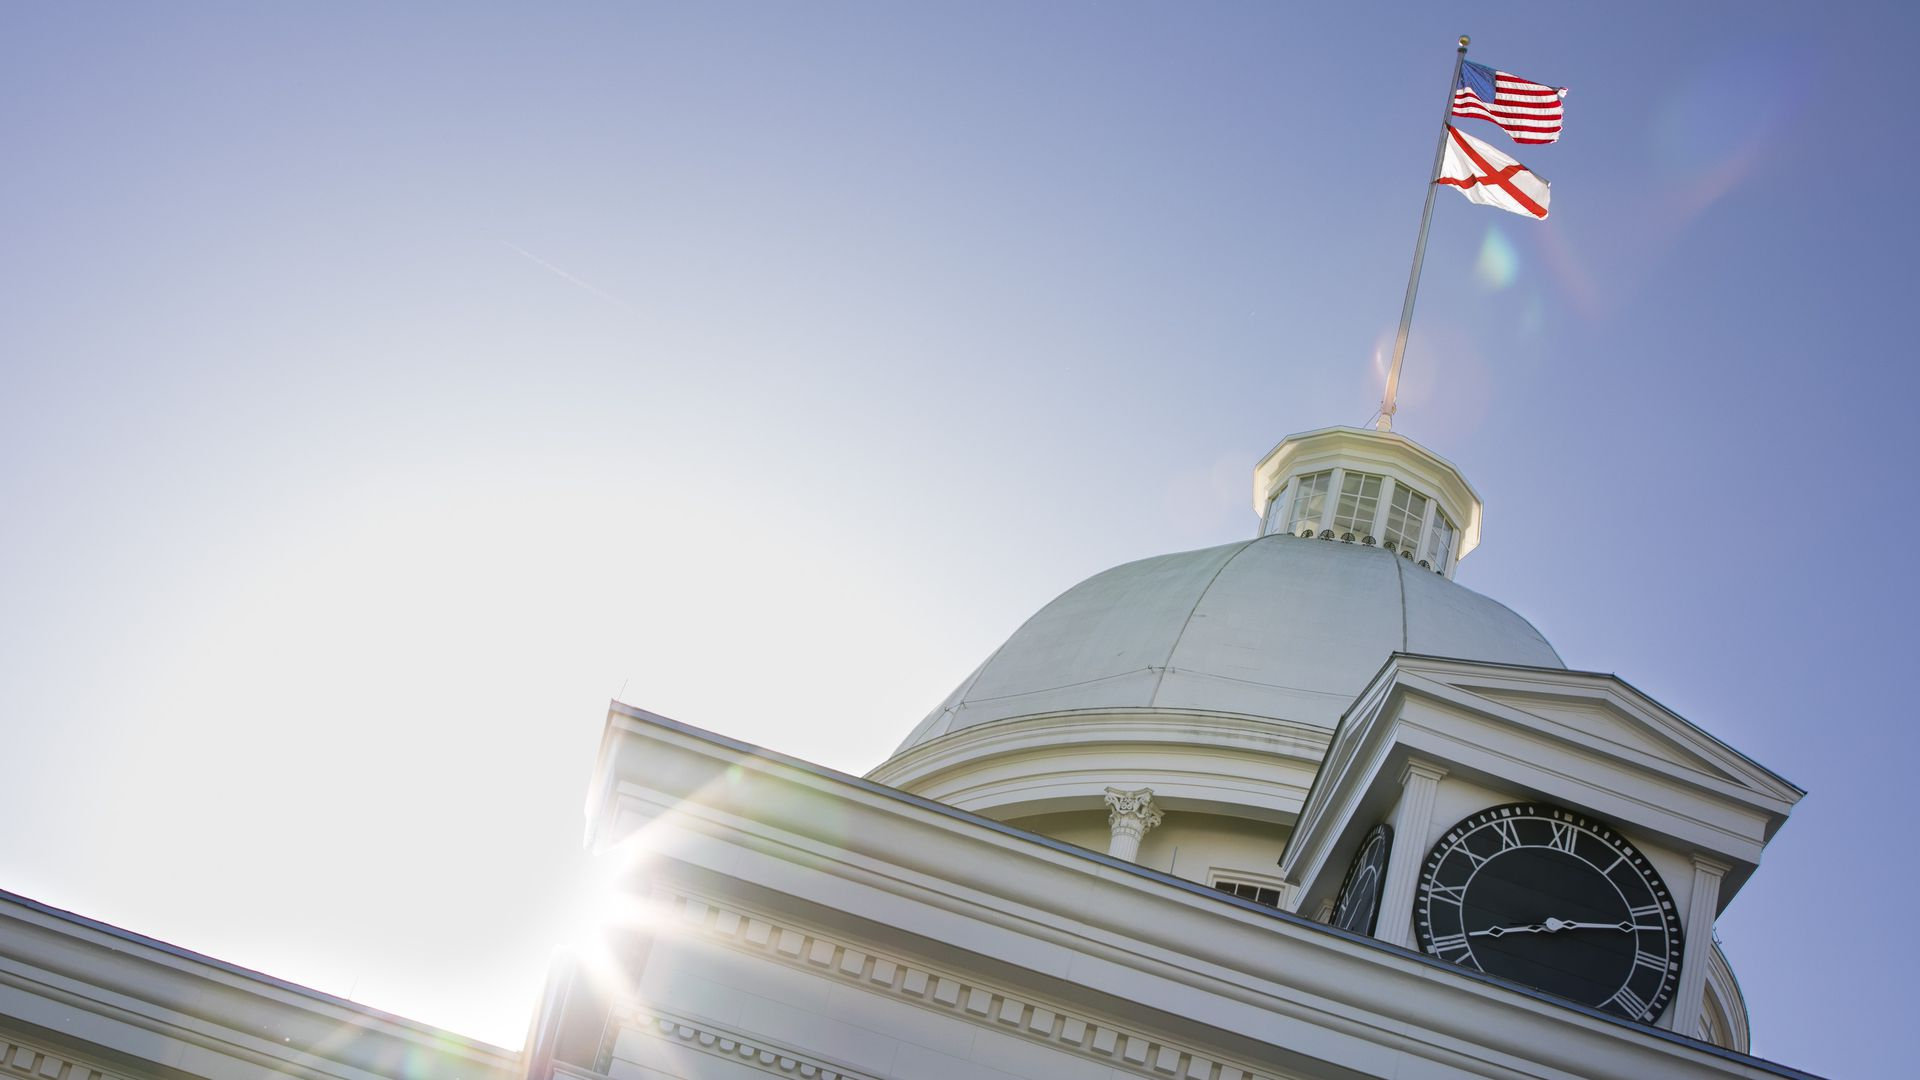 The flag of Alabama below the U.S. flag fly over a Montgomery Statehouse.